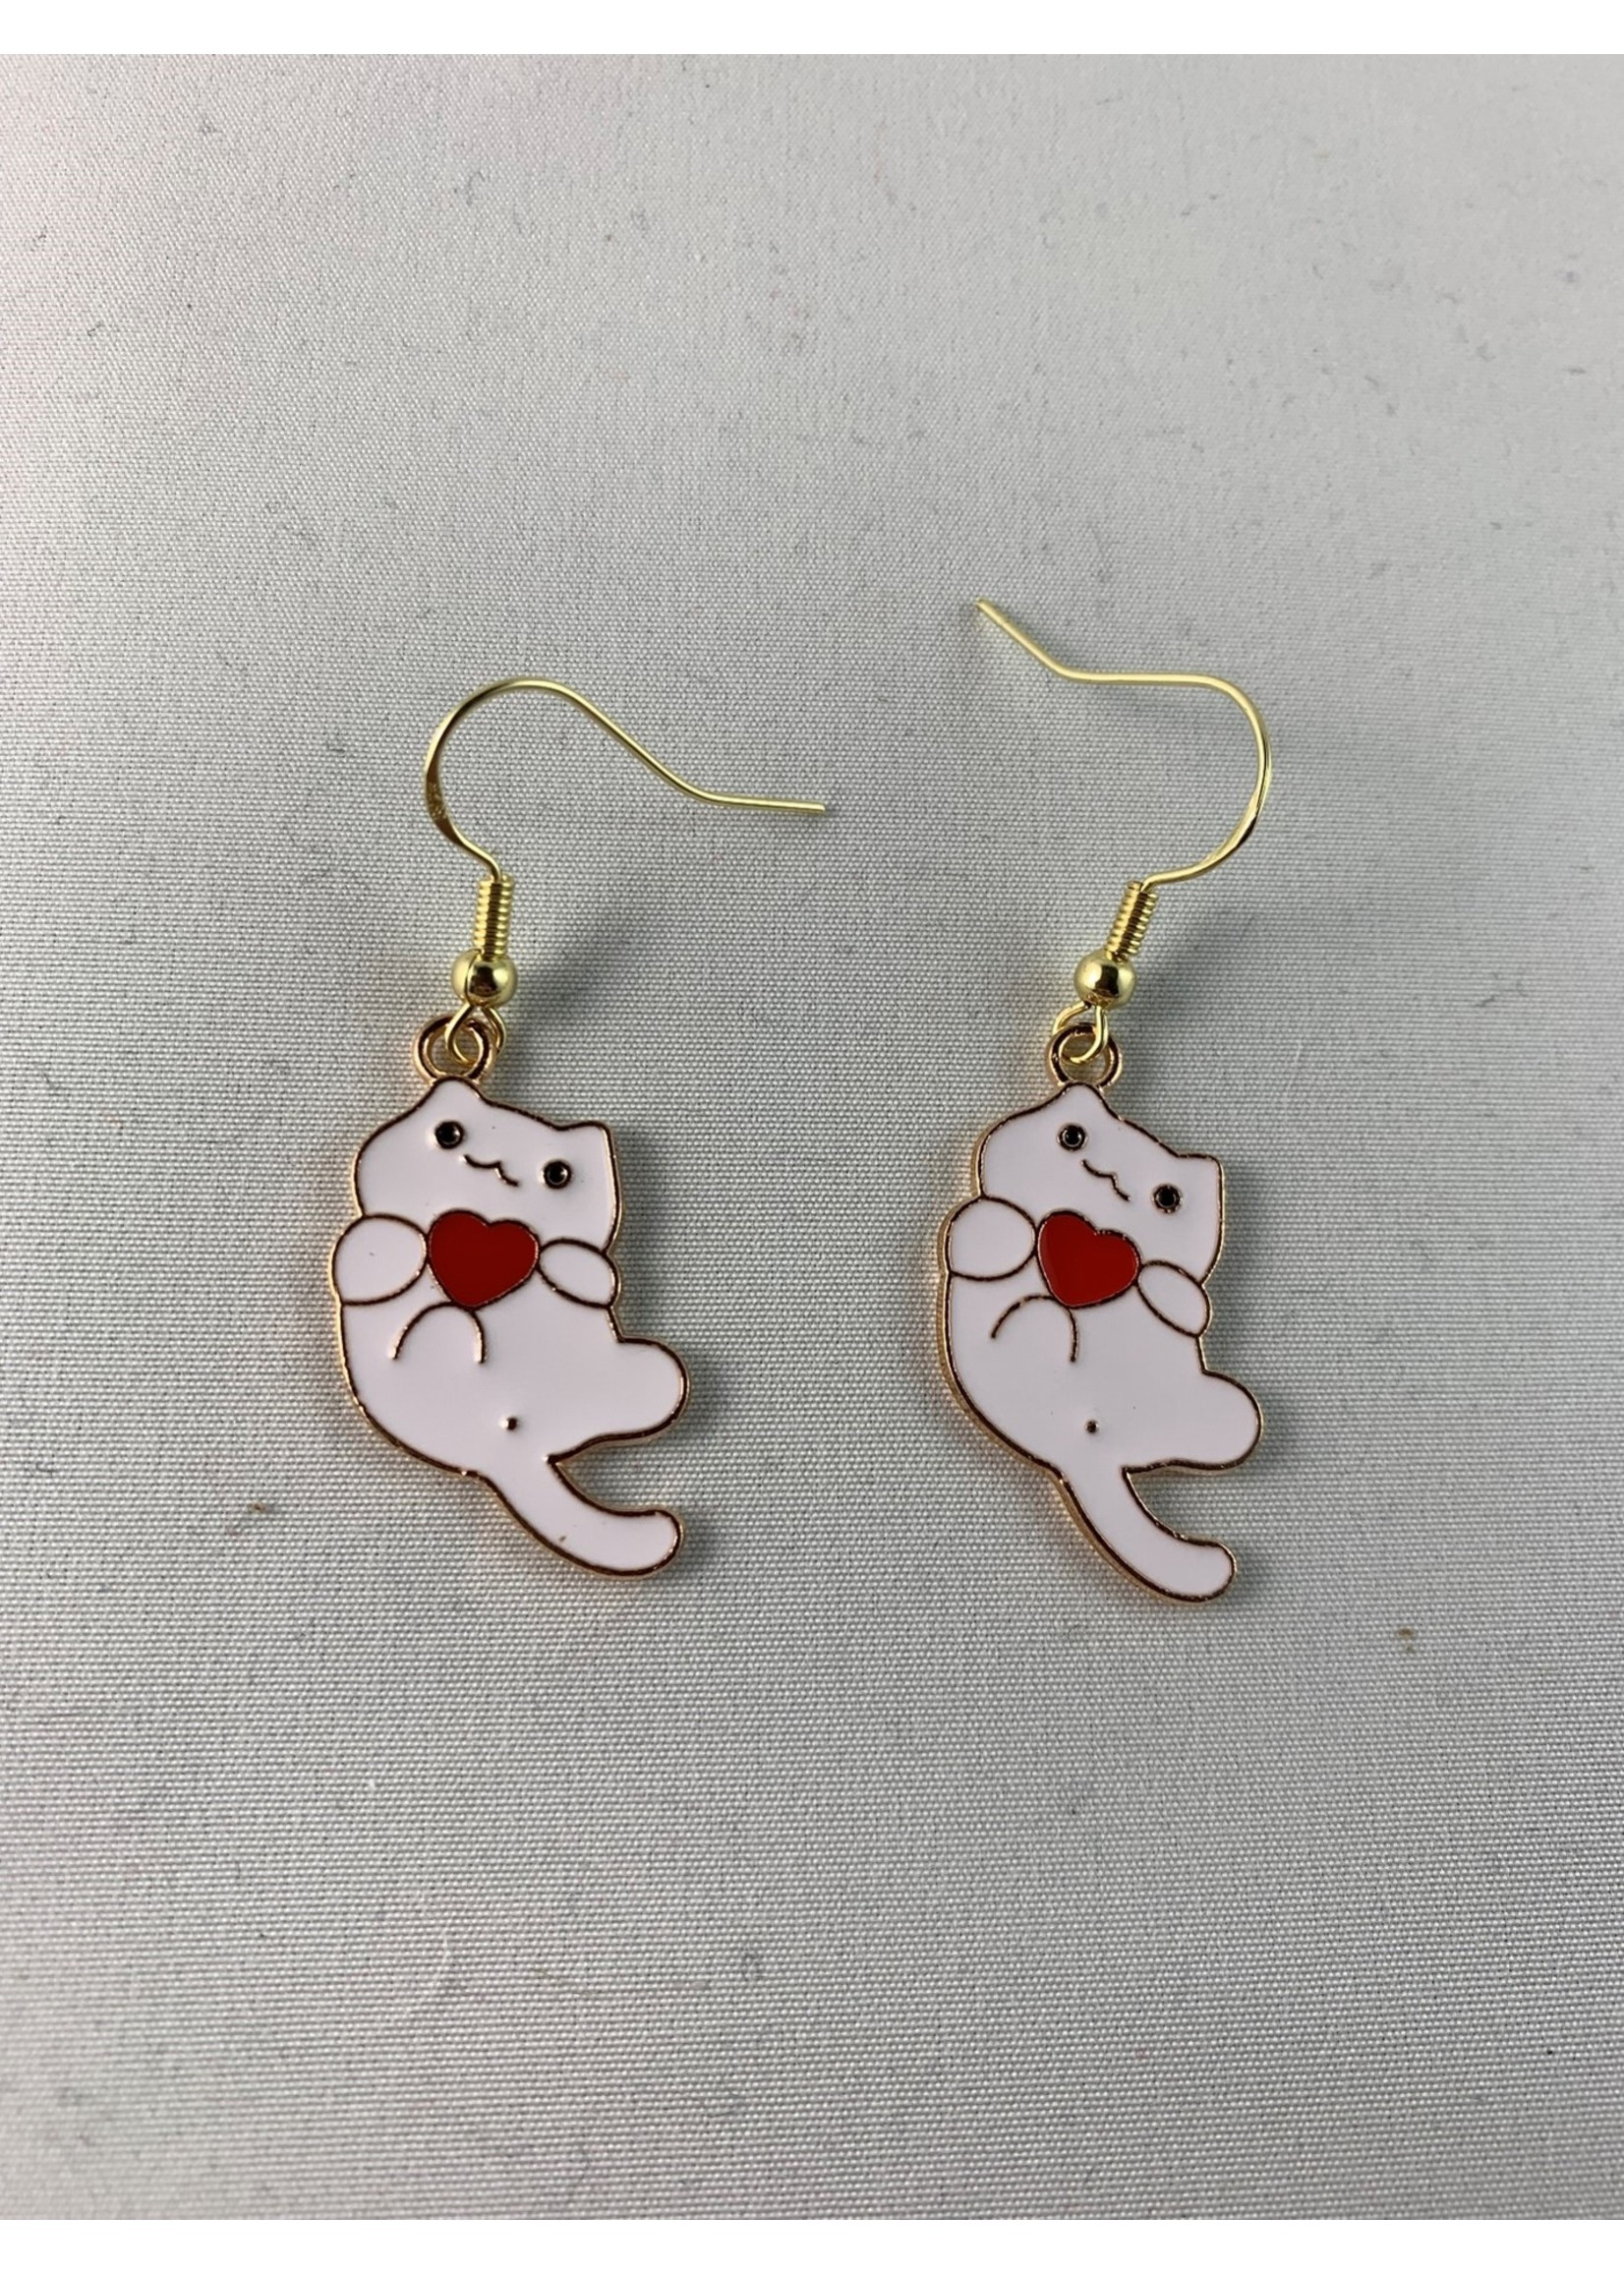 Earrings White Cat with Heart